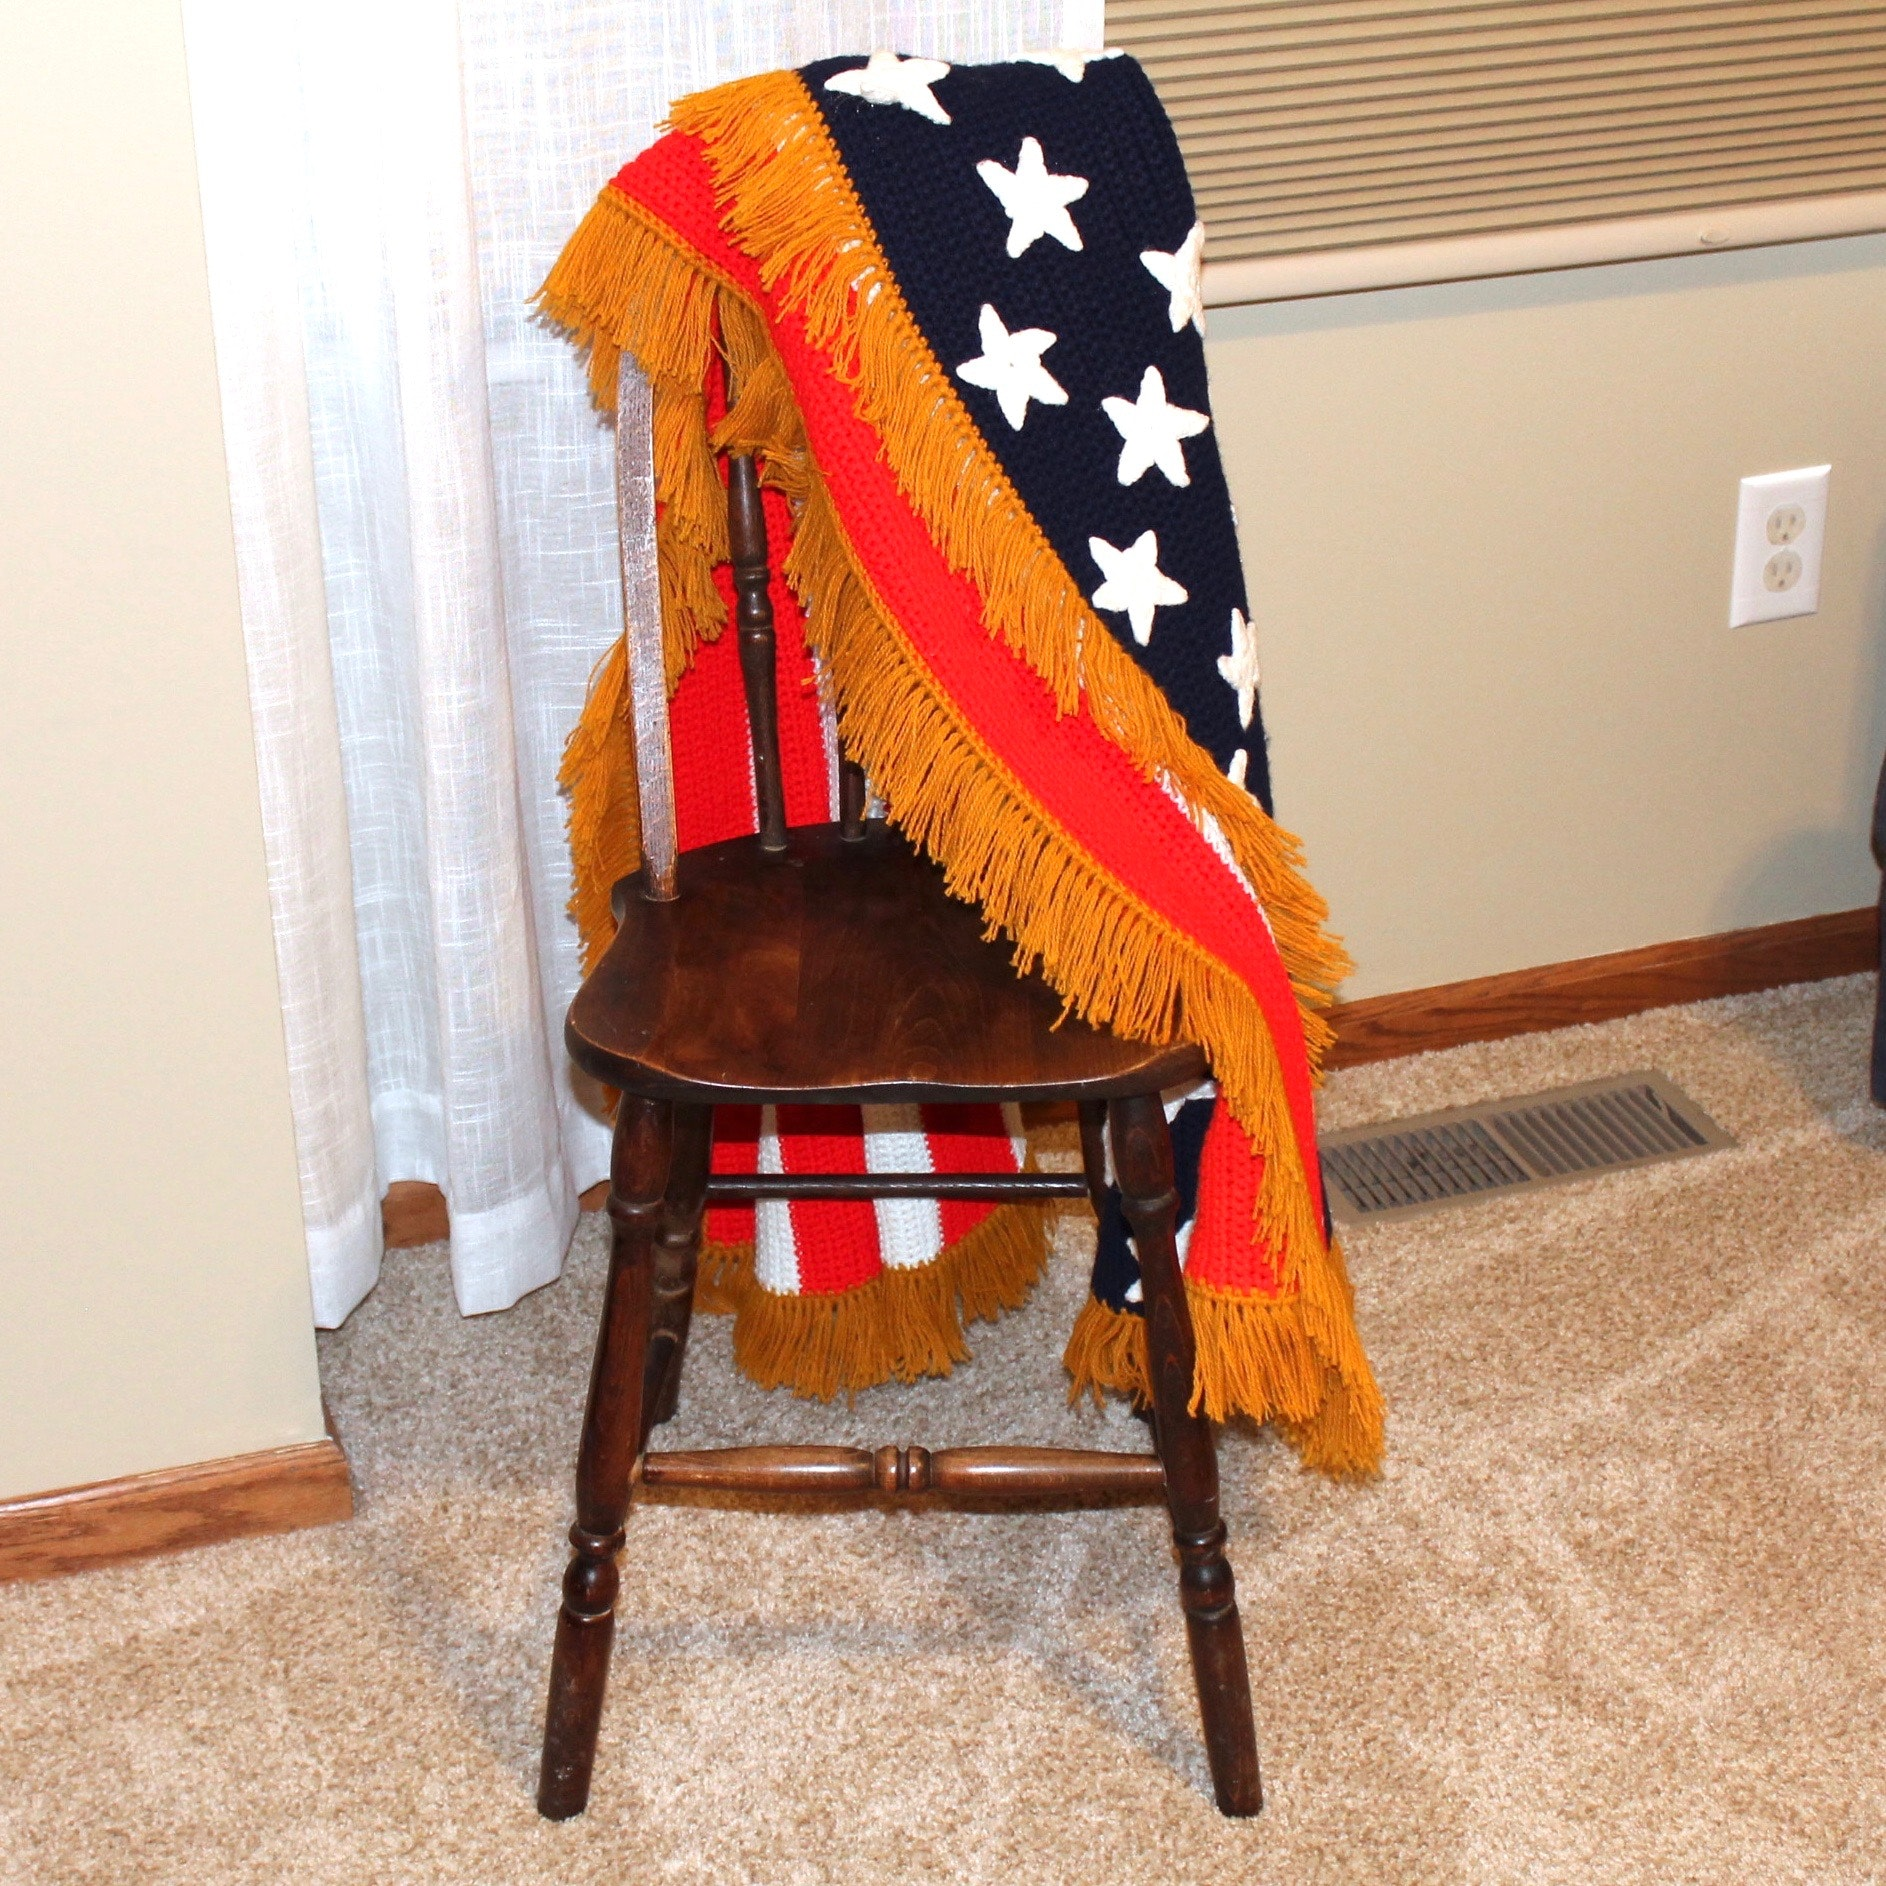 Vintage Plank Chair with US Flag Afghan